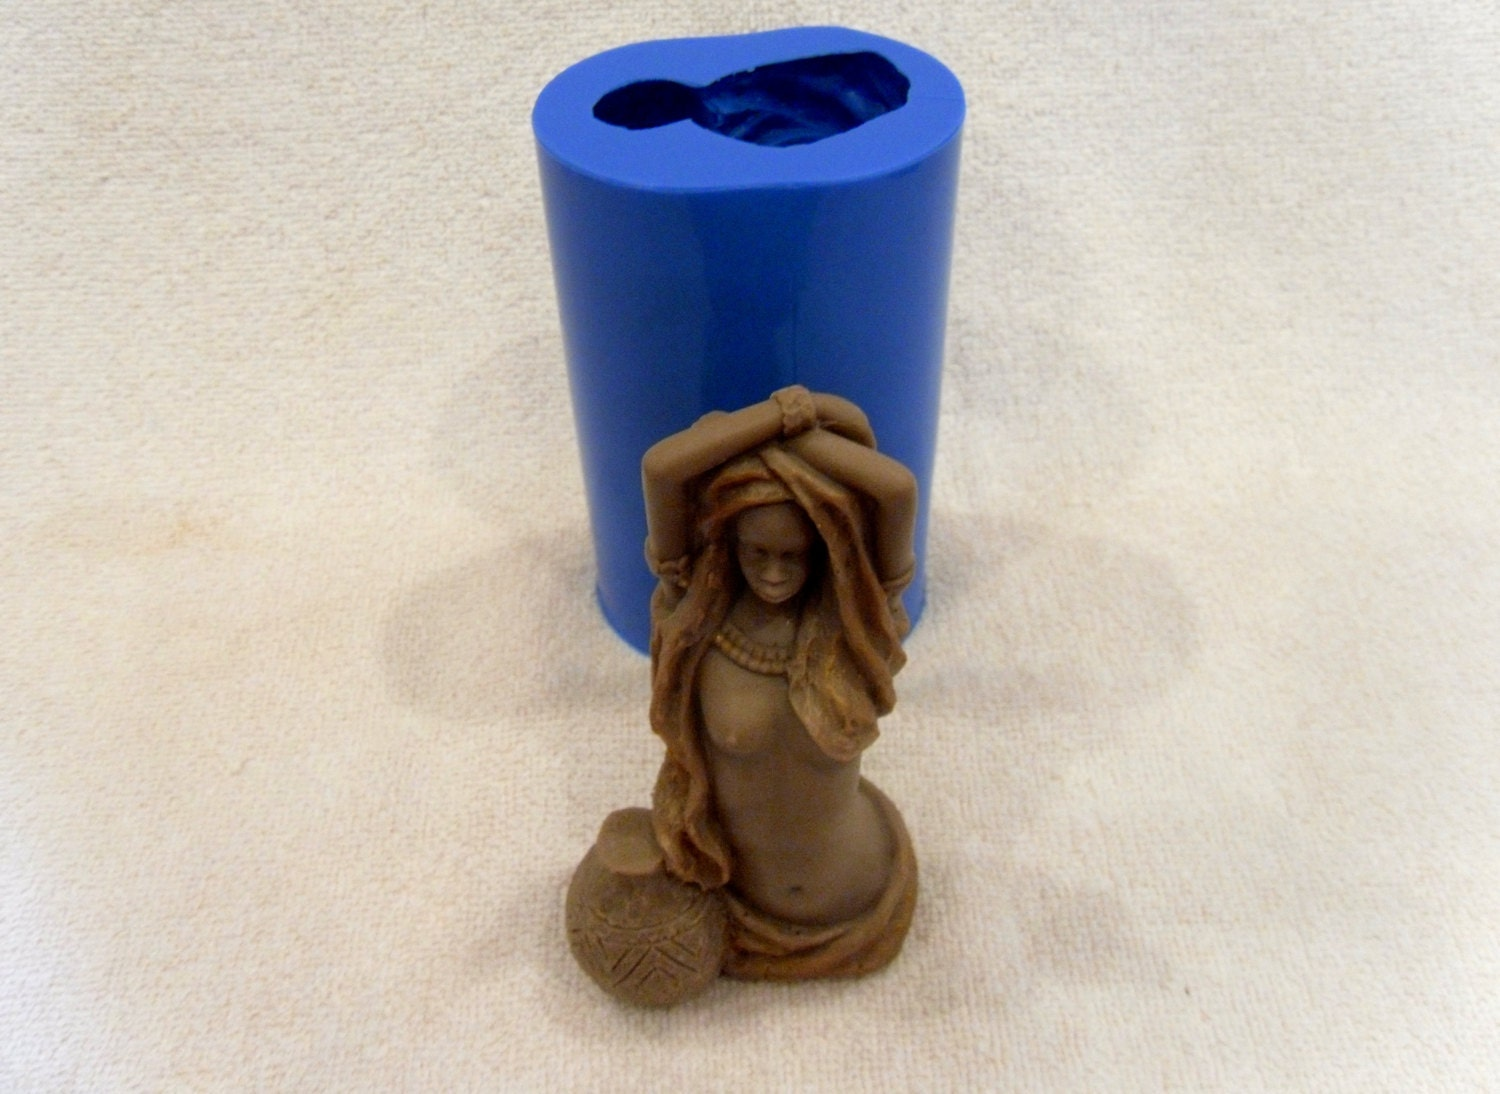 African woman silicone mold for soap and candles making   Etsy